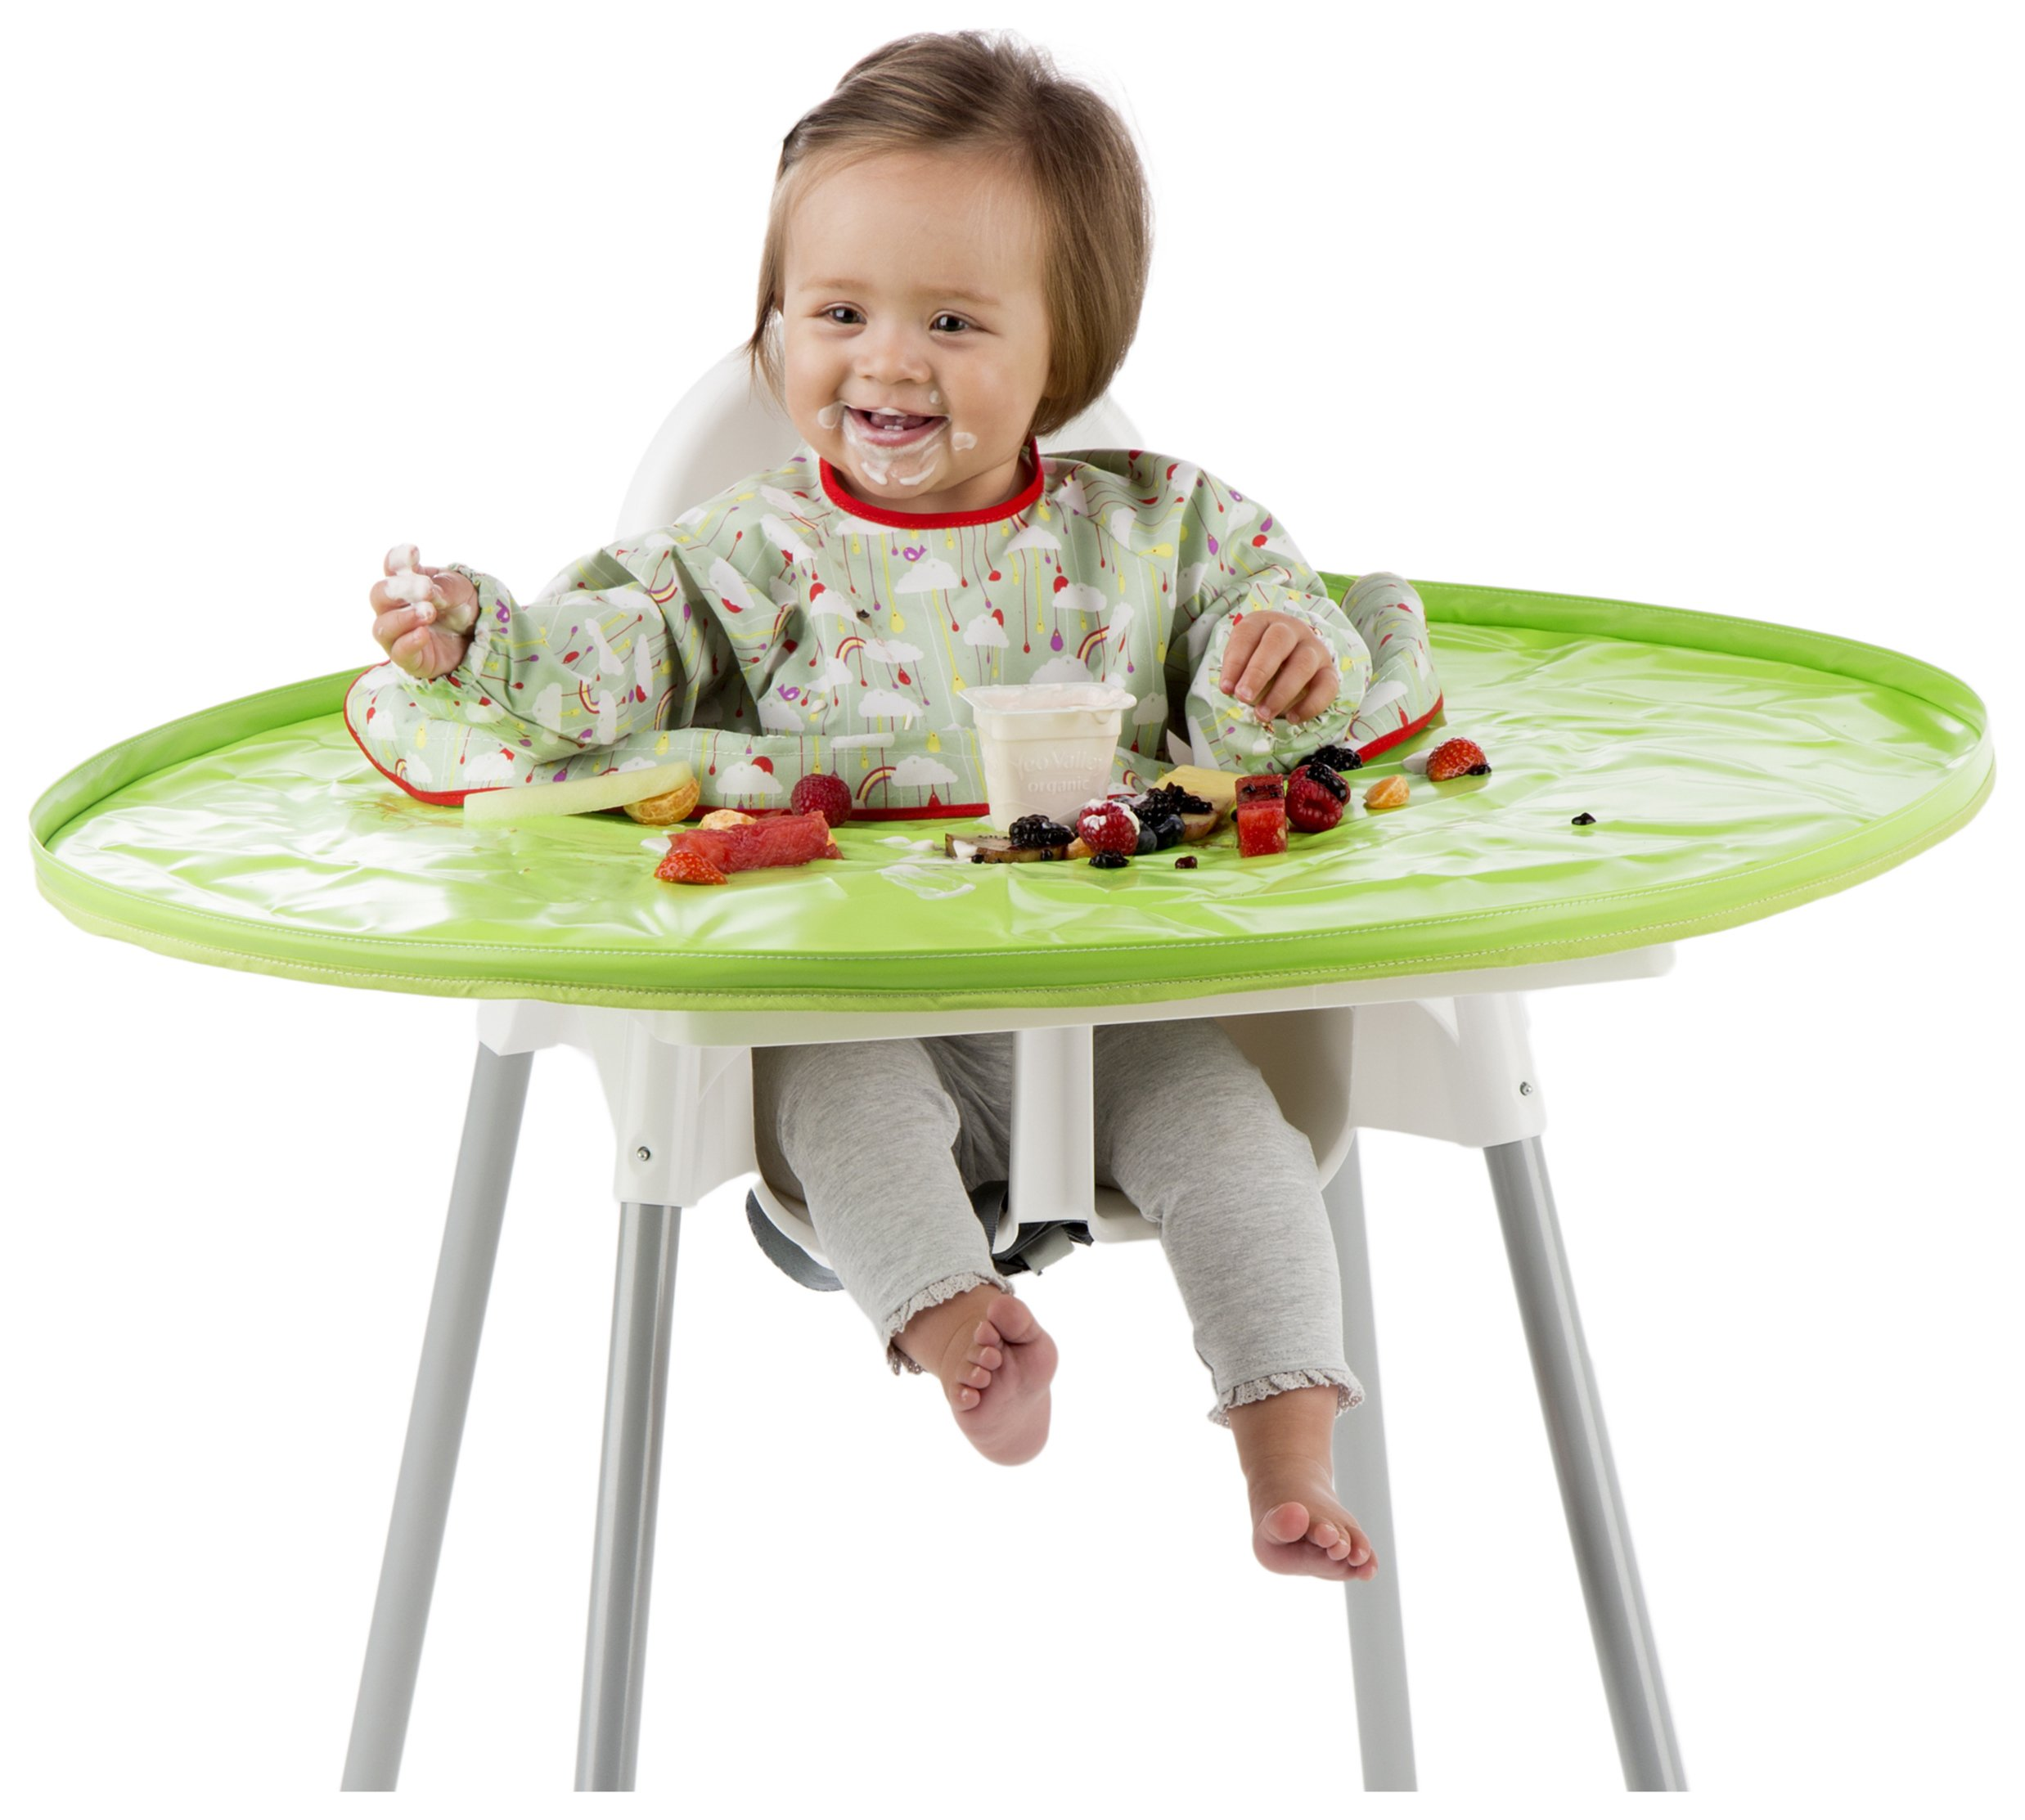 Image of Tidy Tot Bib Tray Kit - Fresh Green